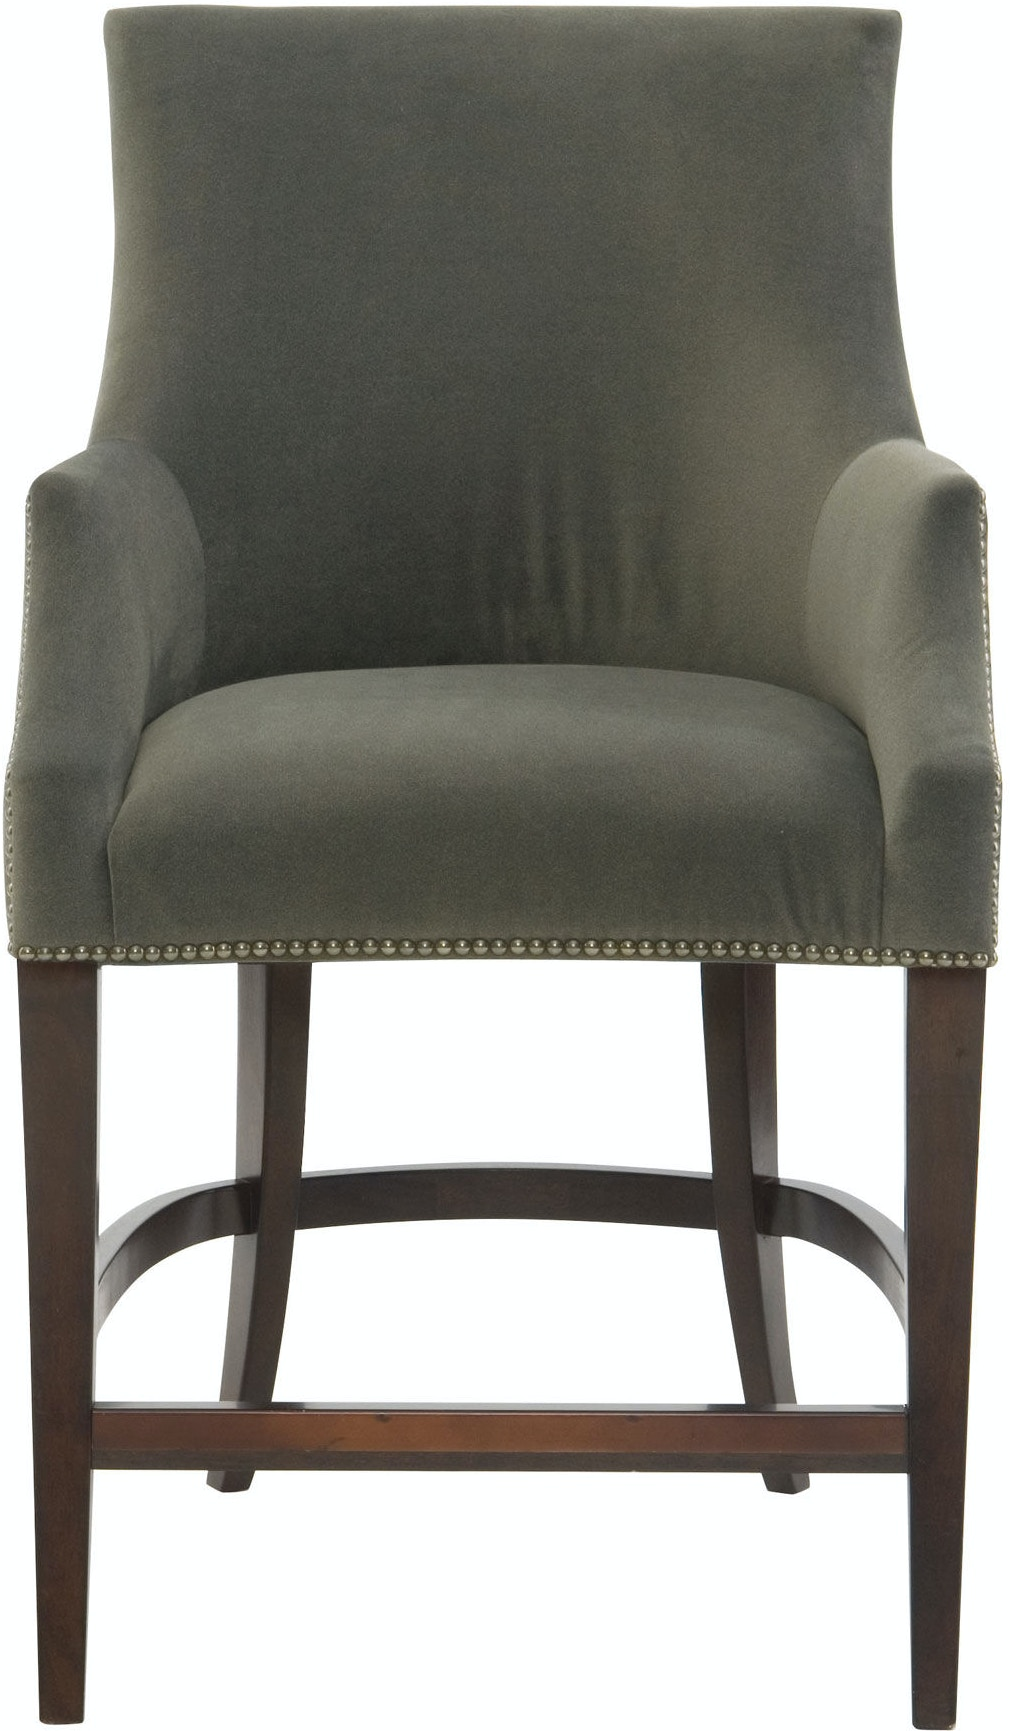 Bernhardt Interiors Bar and Game Room Counter Stool 348  : 348 587 1 from finessehomeliving.com size 1024 x 768 jpeg 23kB